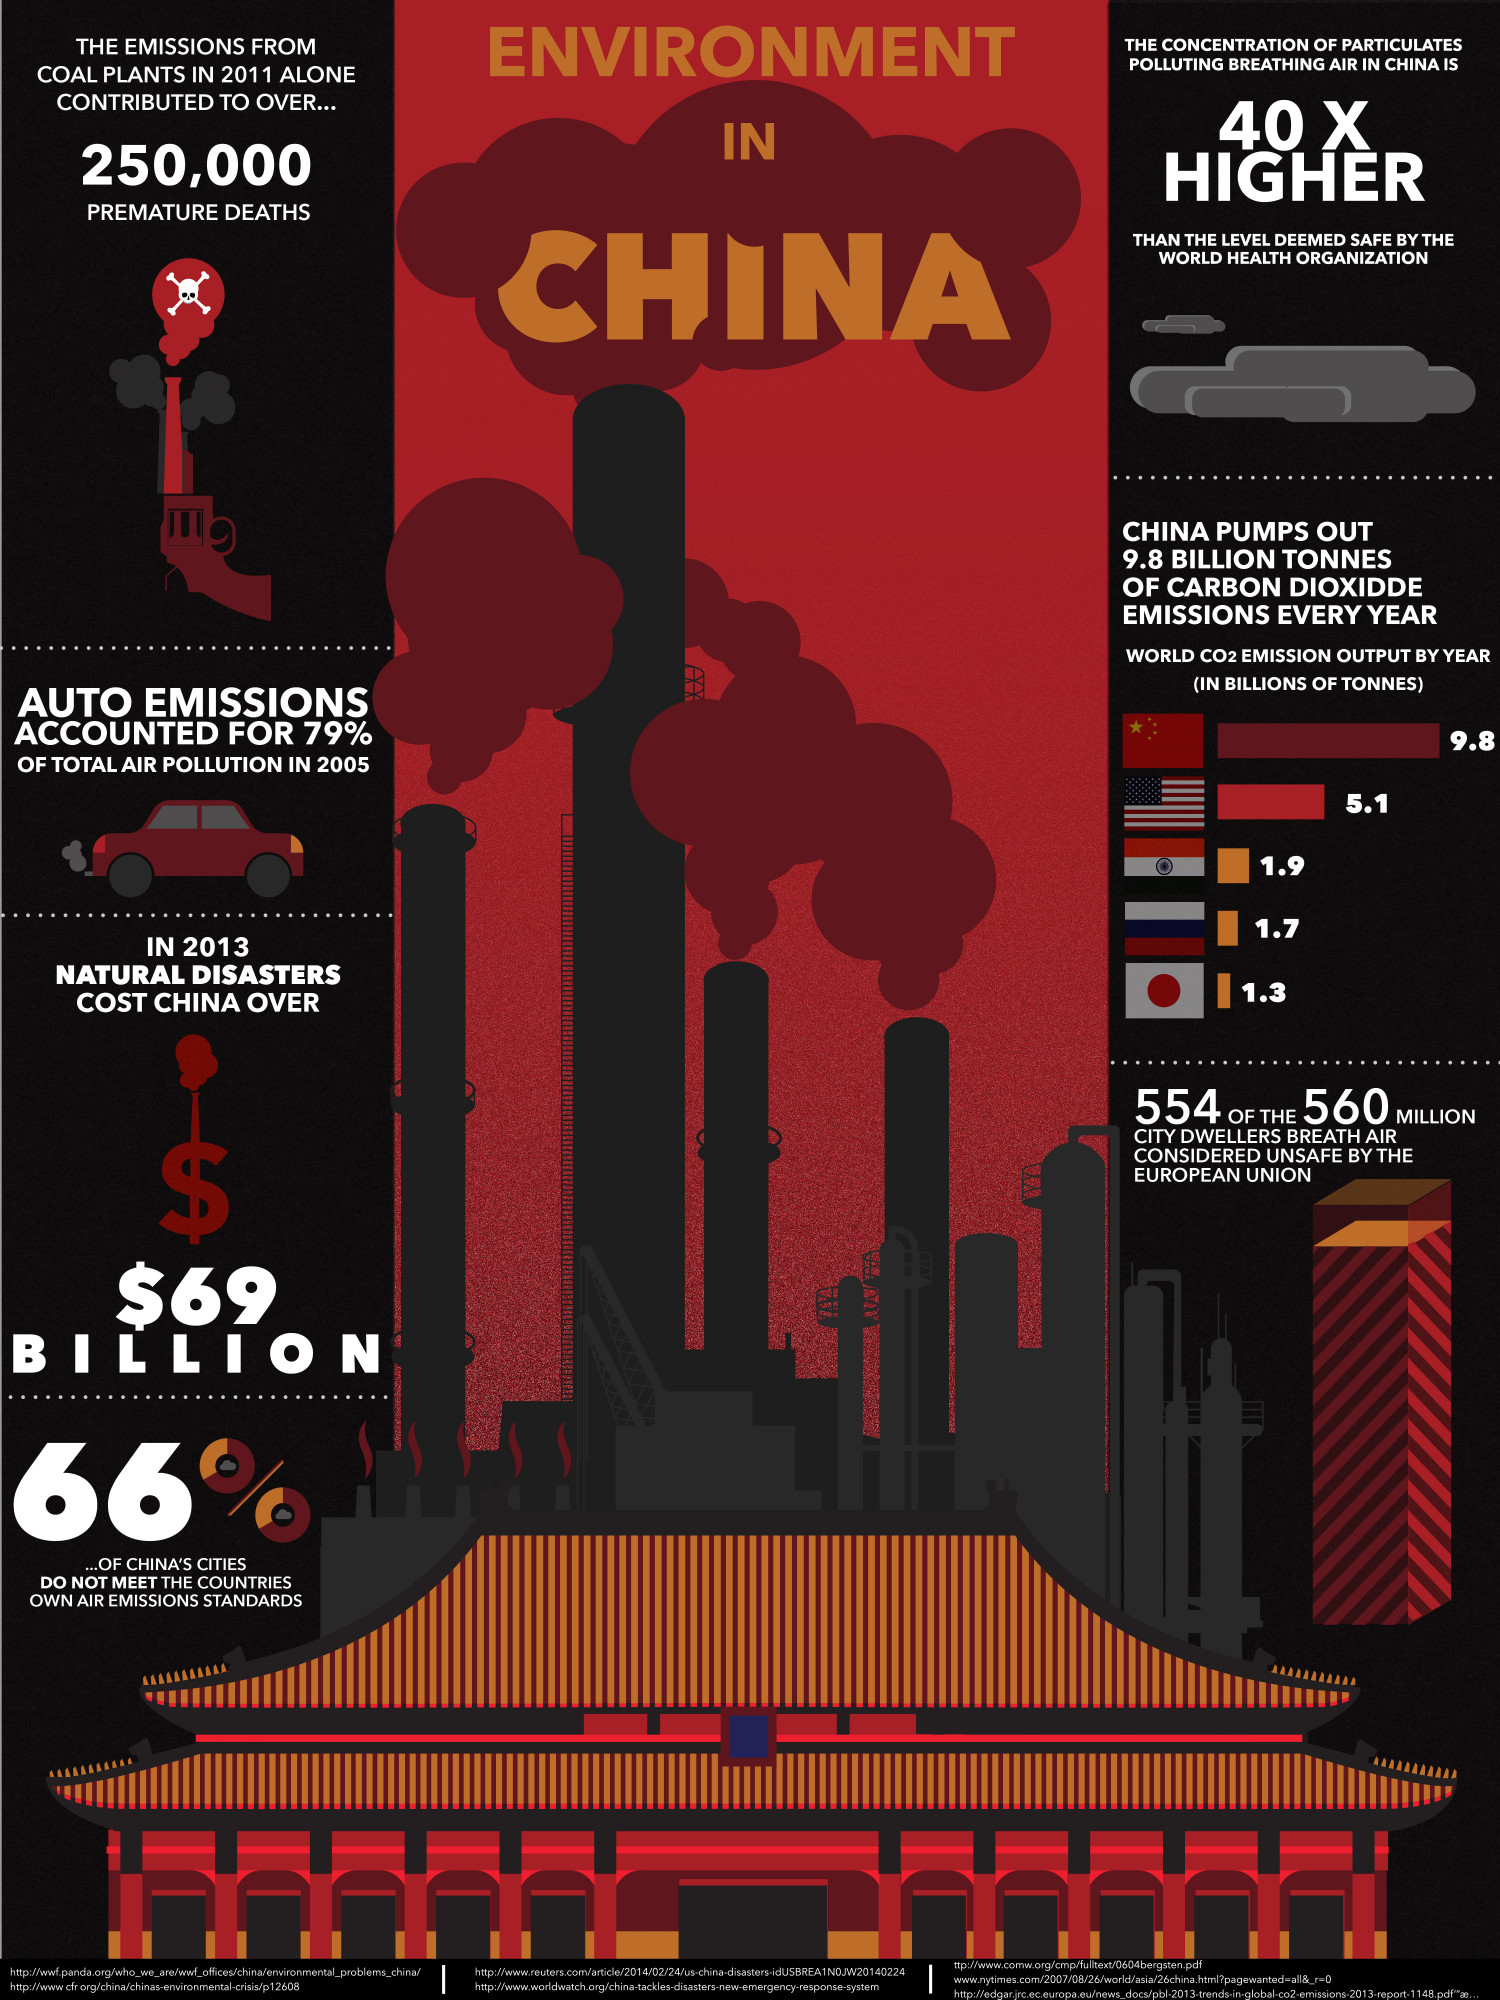 Environment in China Infographic